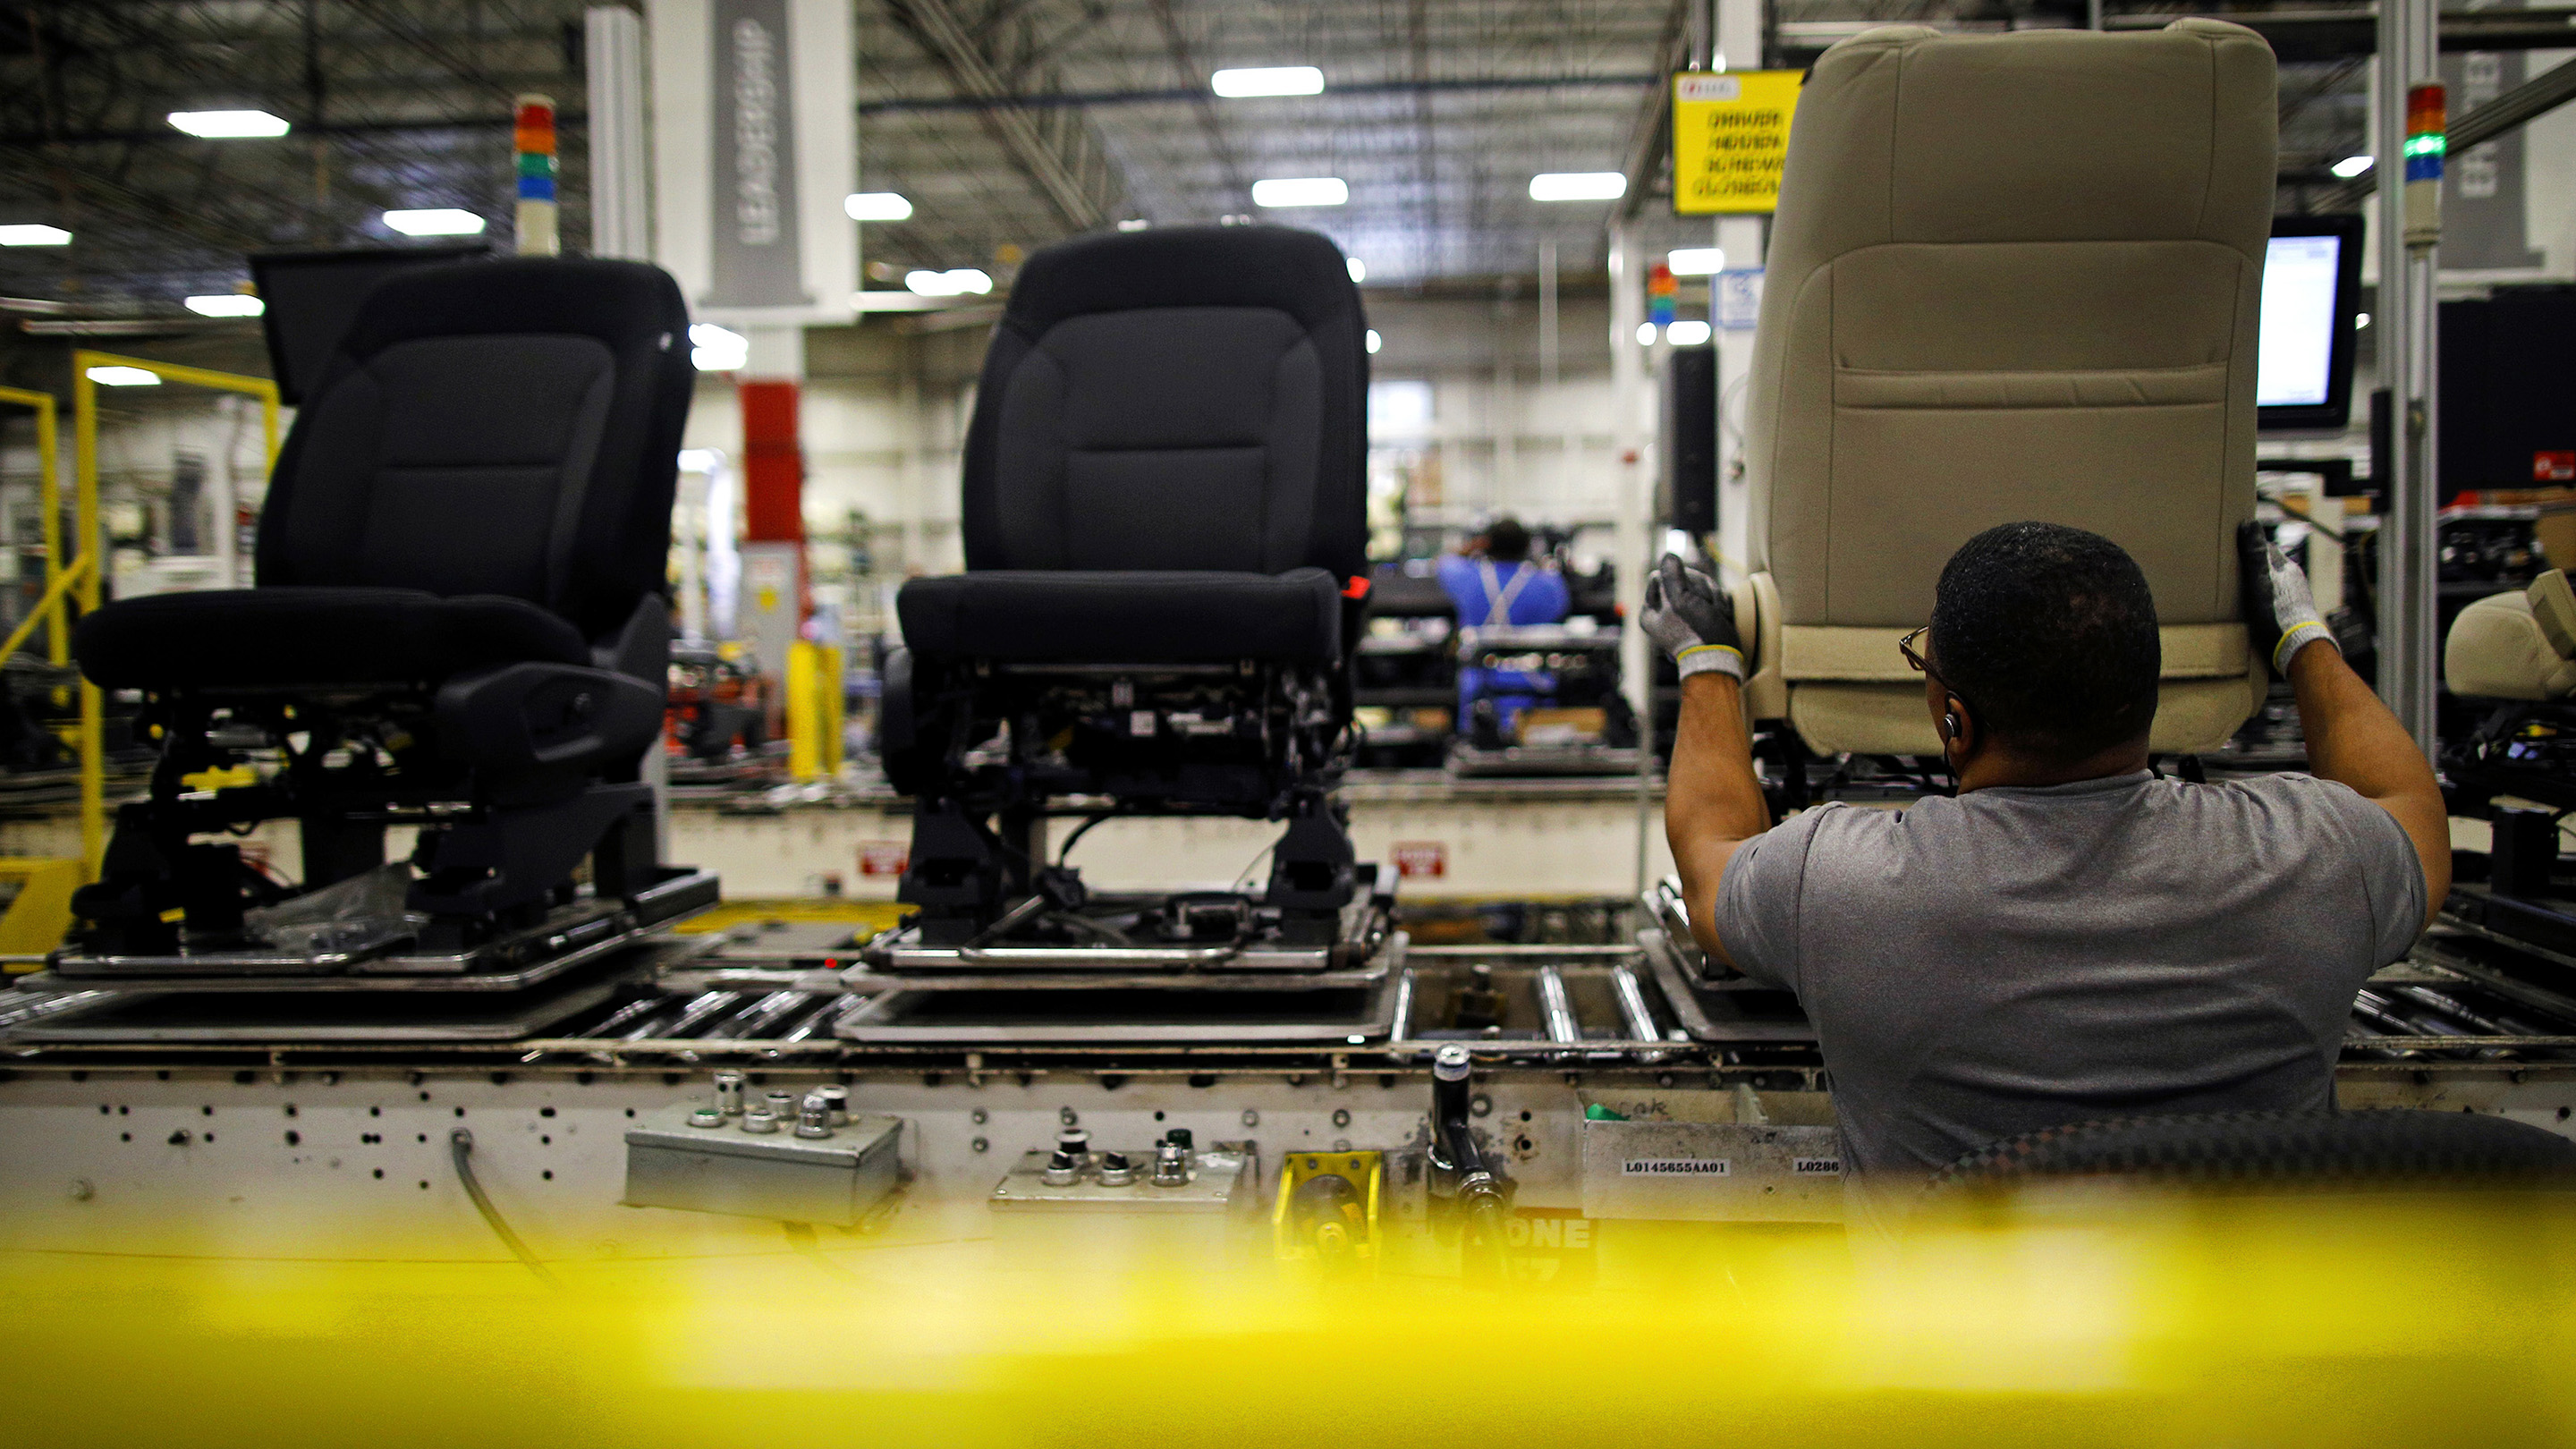 Operations At The Lear Corp. Car Seat Manufacturing Facility Ahead Of Durable Goods Figures